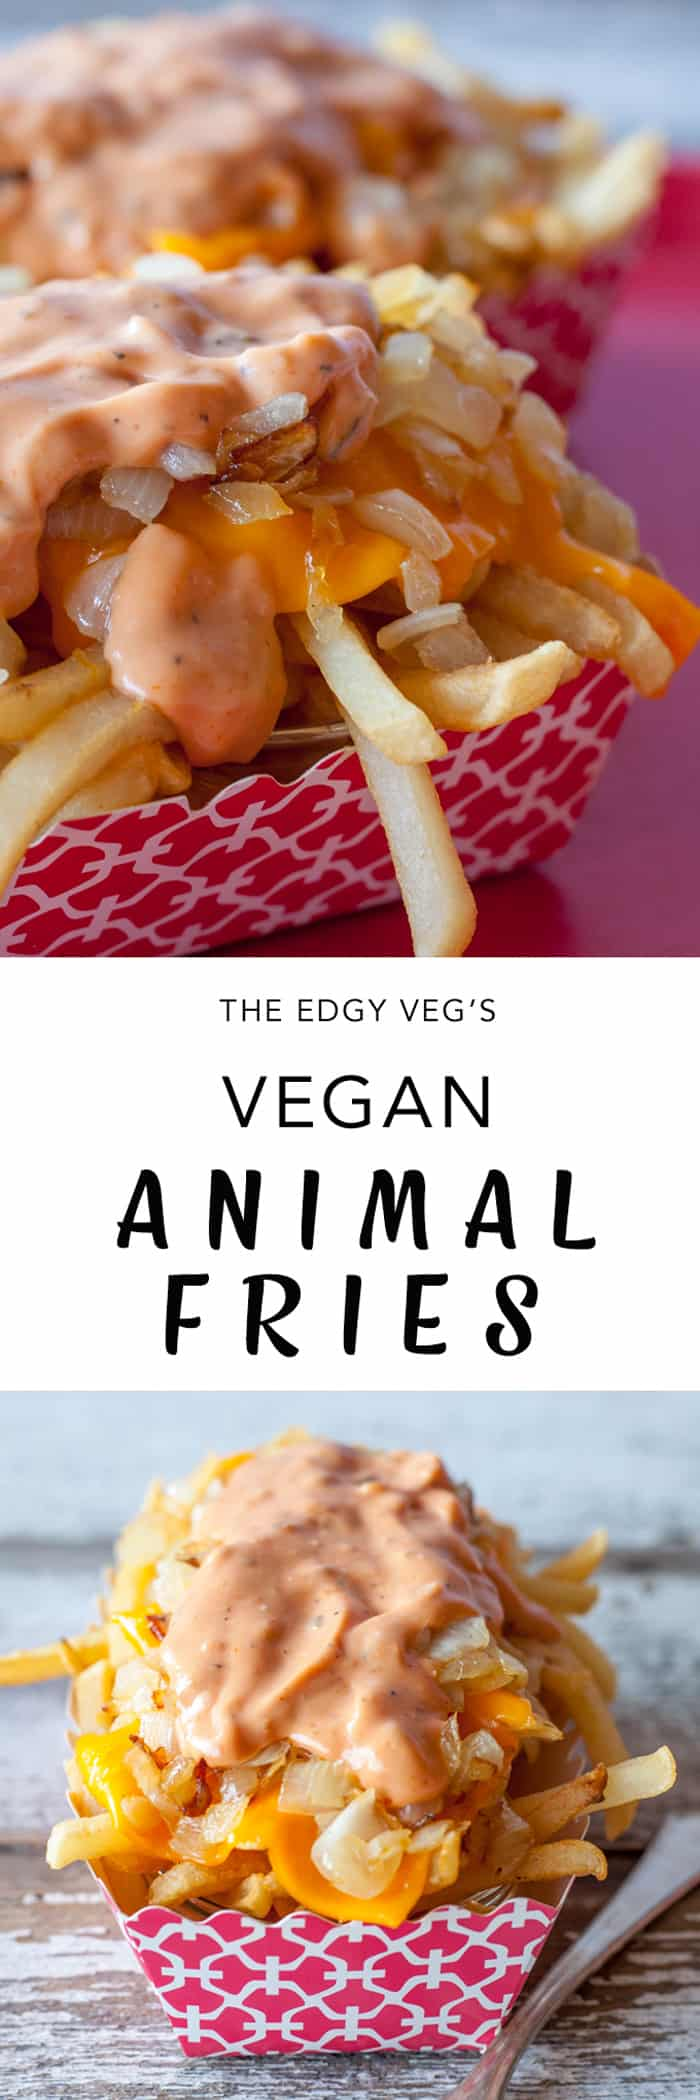 Vegan animal style fries recipe